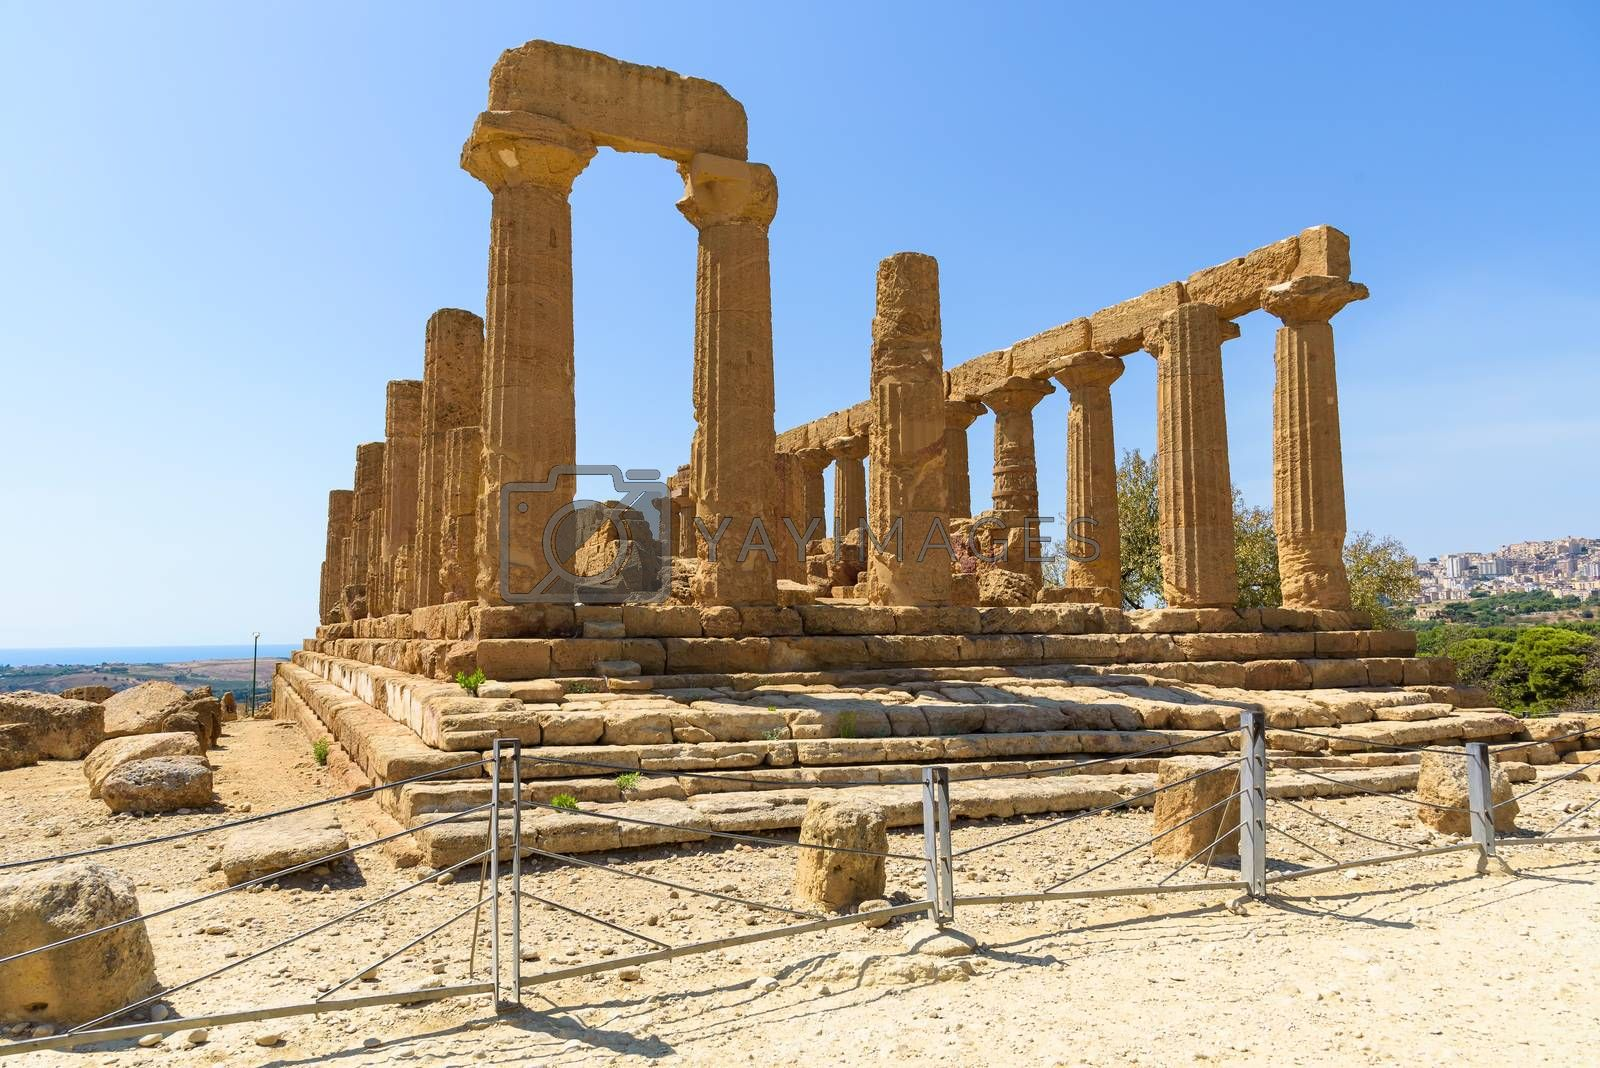 Ruins of the Temple of Juno in the Valley of the Temples in Agrigento, Sicily, Italy